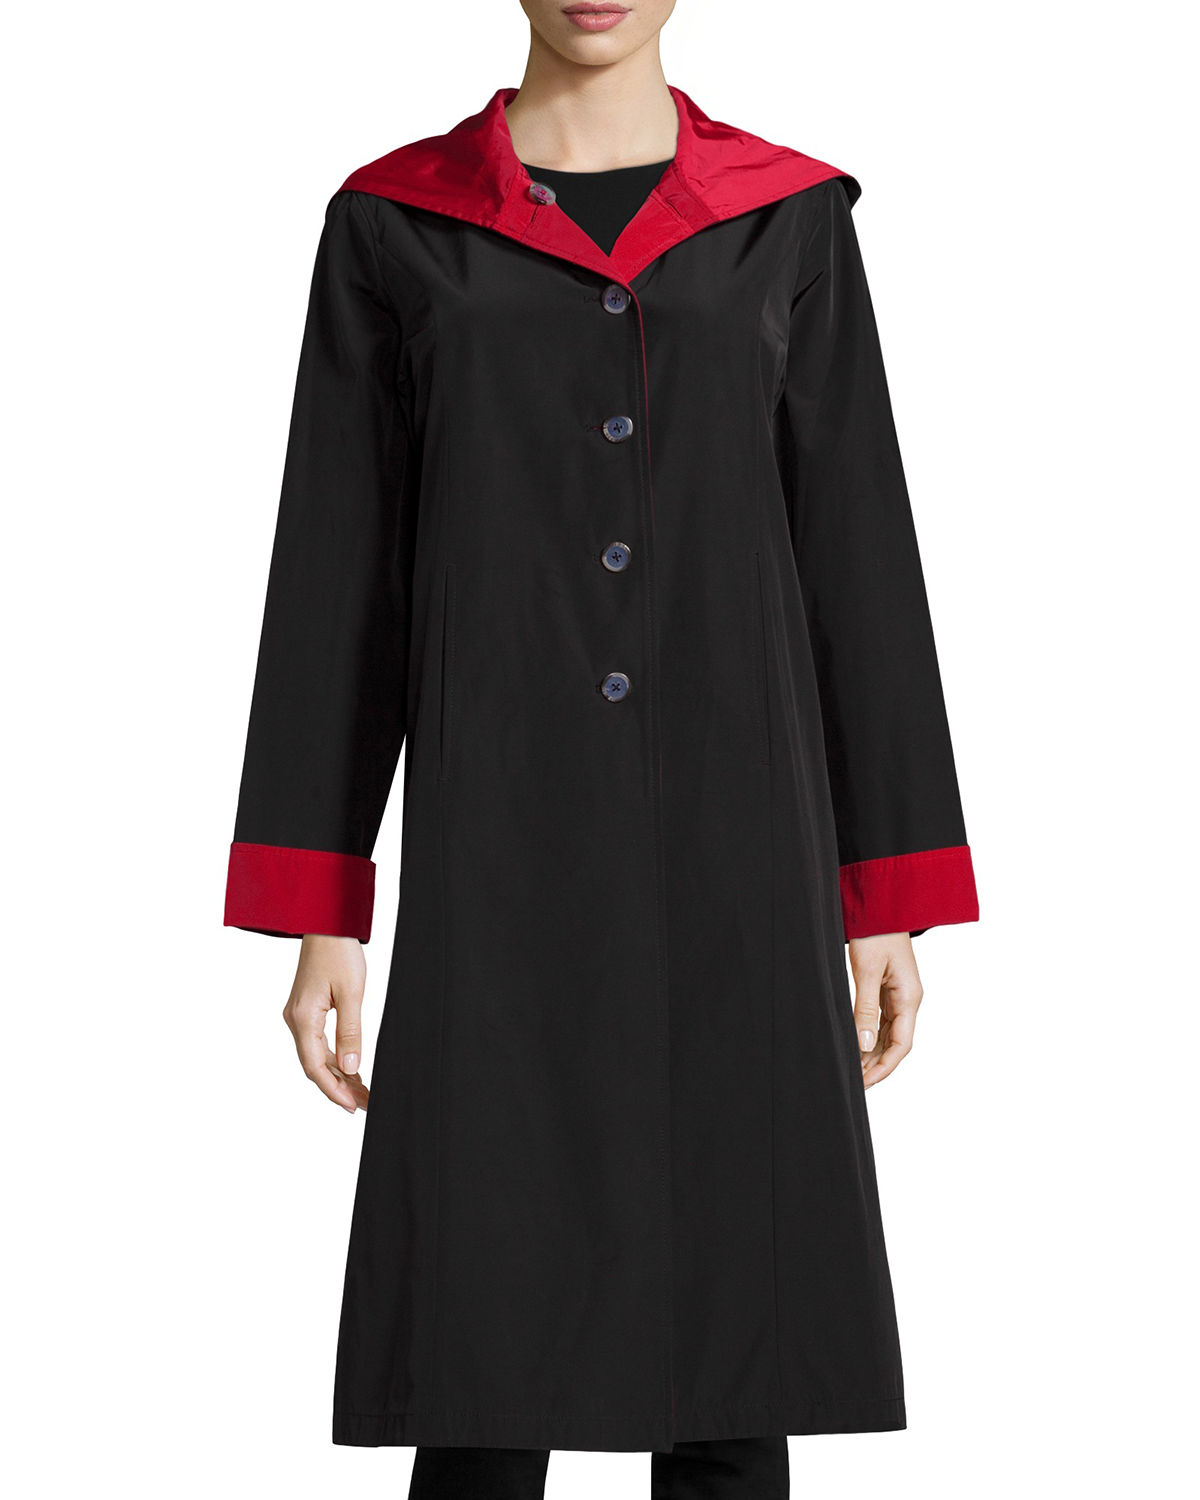 Jane Post HOODED BUTTON-FRONT REVERSIBLE COAT